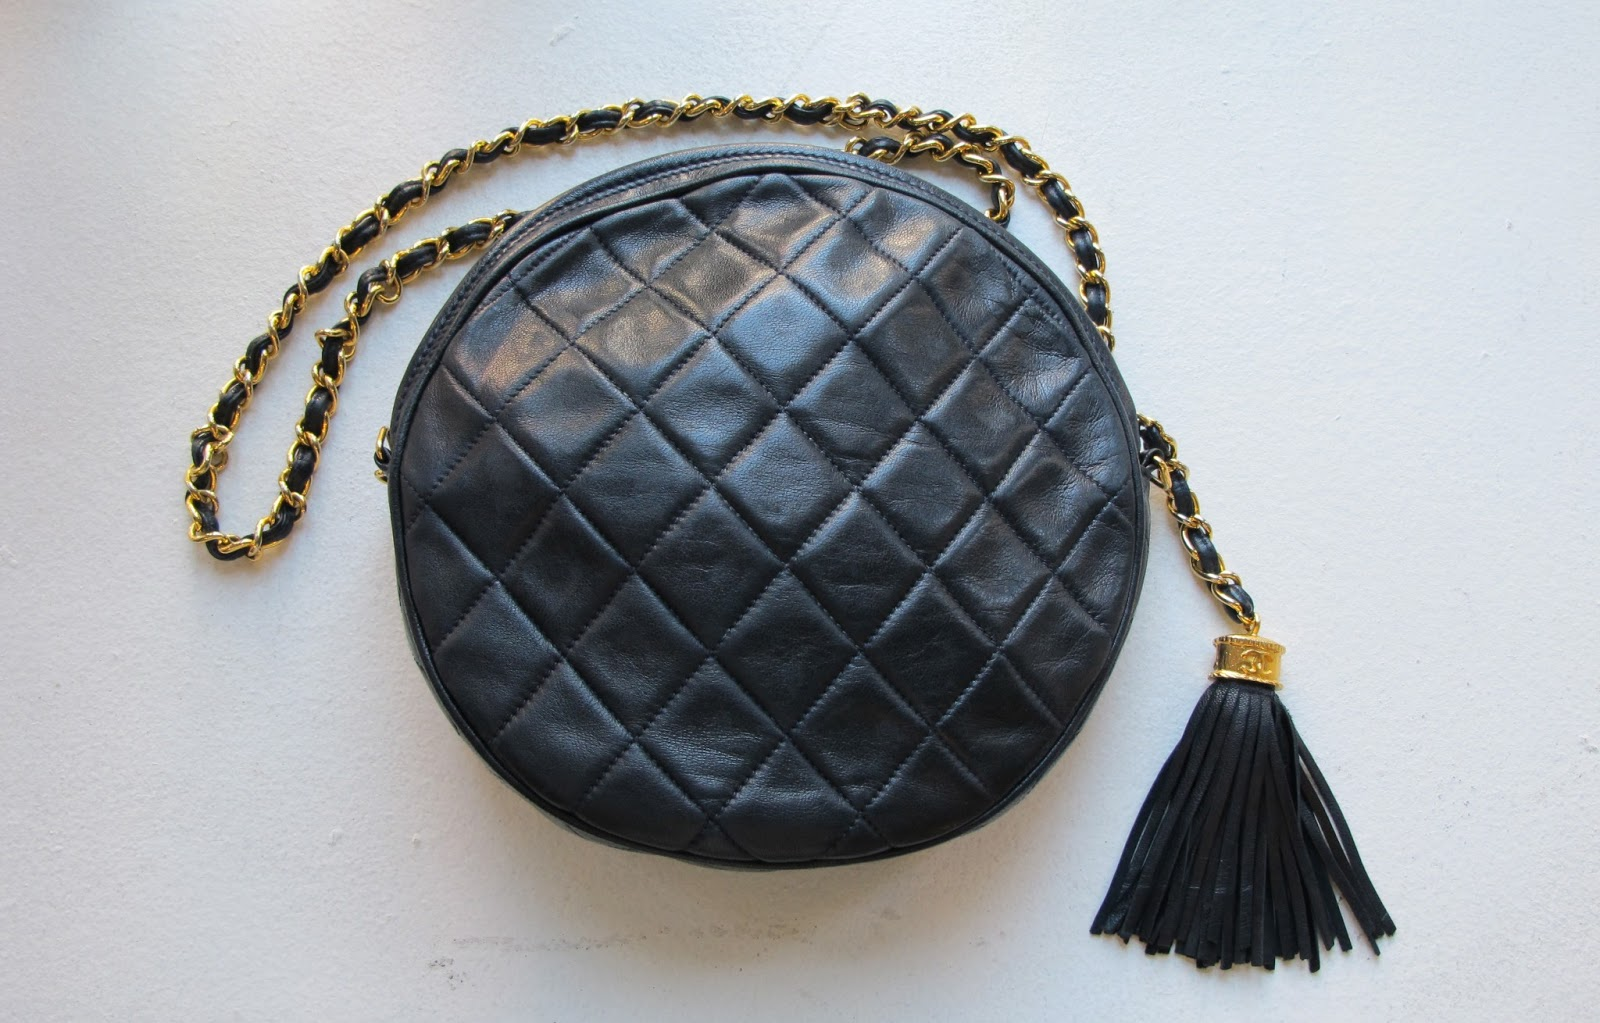 e8f3691a4deed3 Added to the illustrious stock of luxury handbags is this vintage Chanel  circle bag, with a playful fringe tassel zip up. This is a small, chic, ...